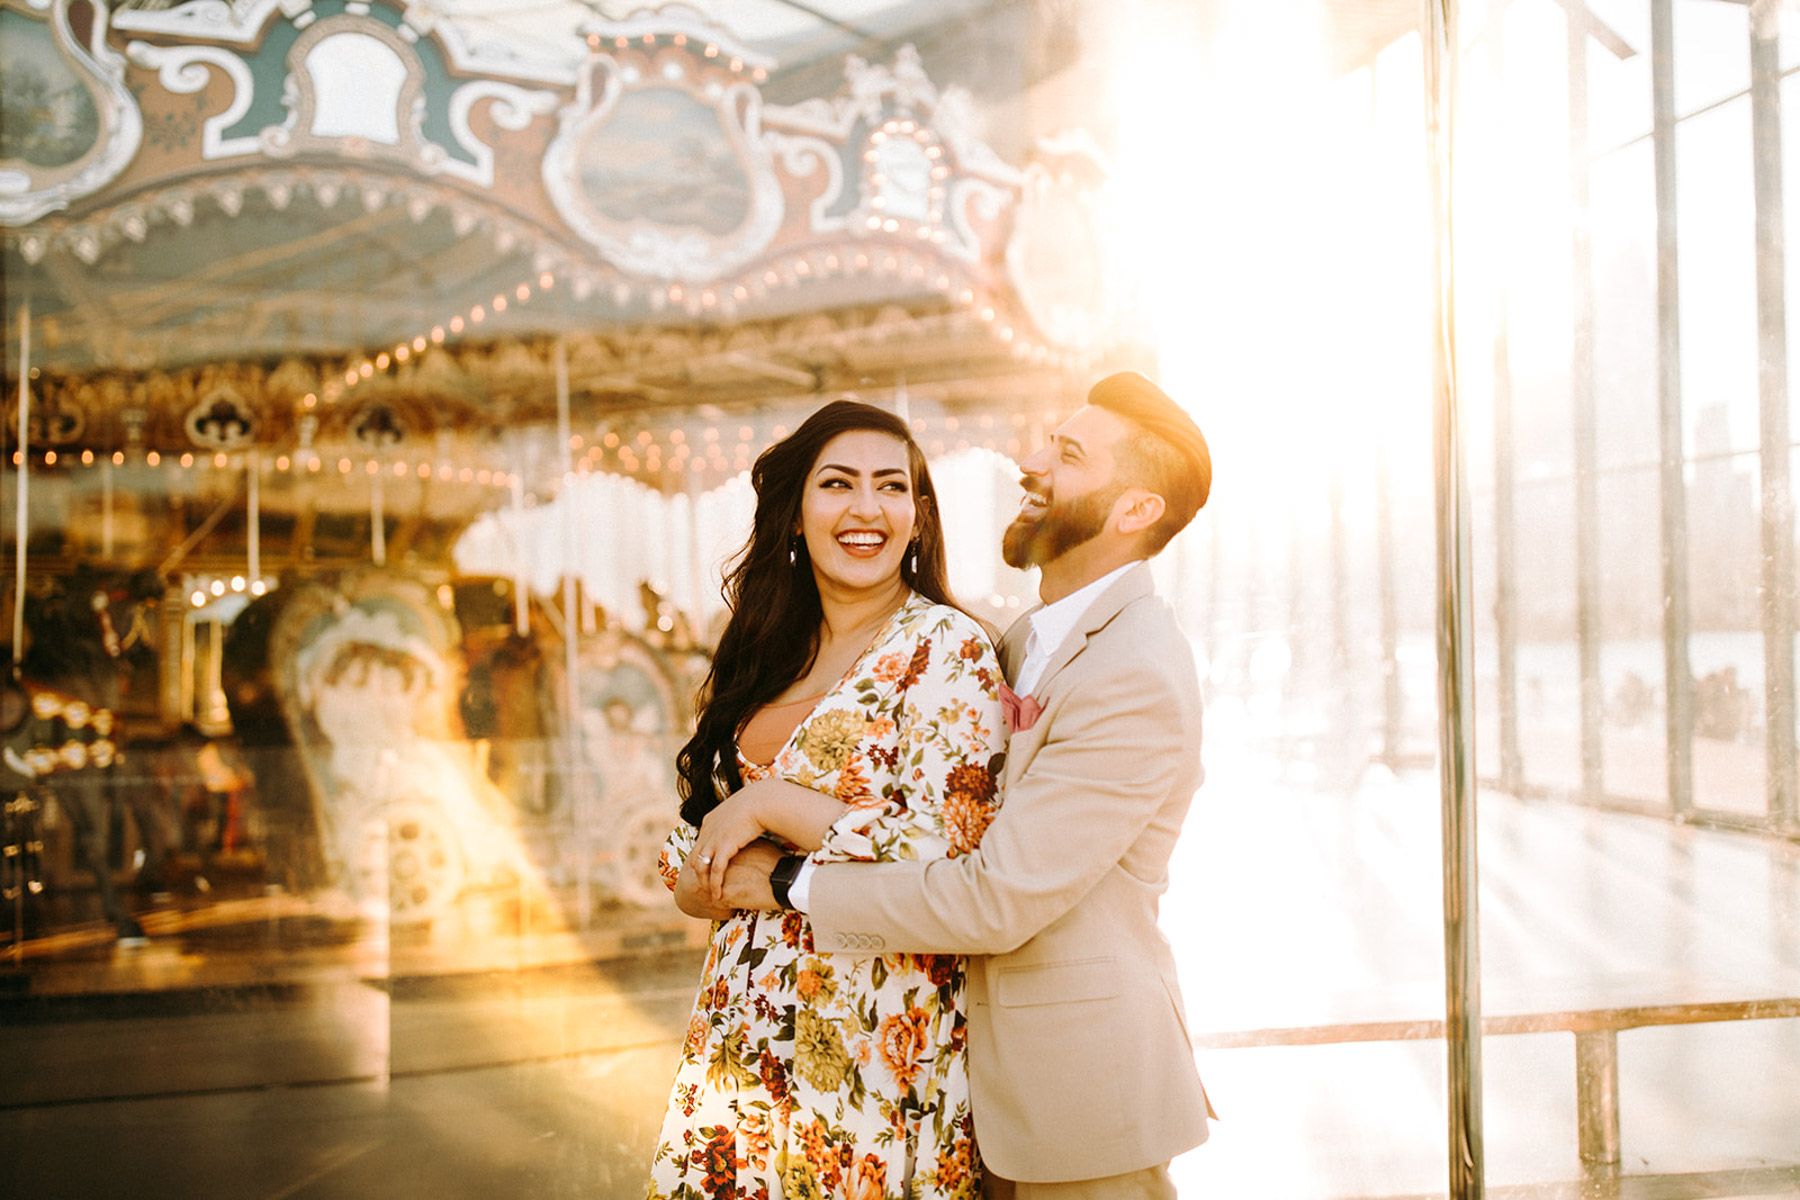 A couple is embracing each other and standing in front of a carousel.